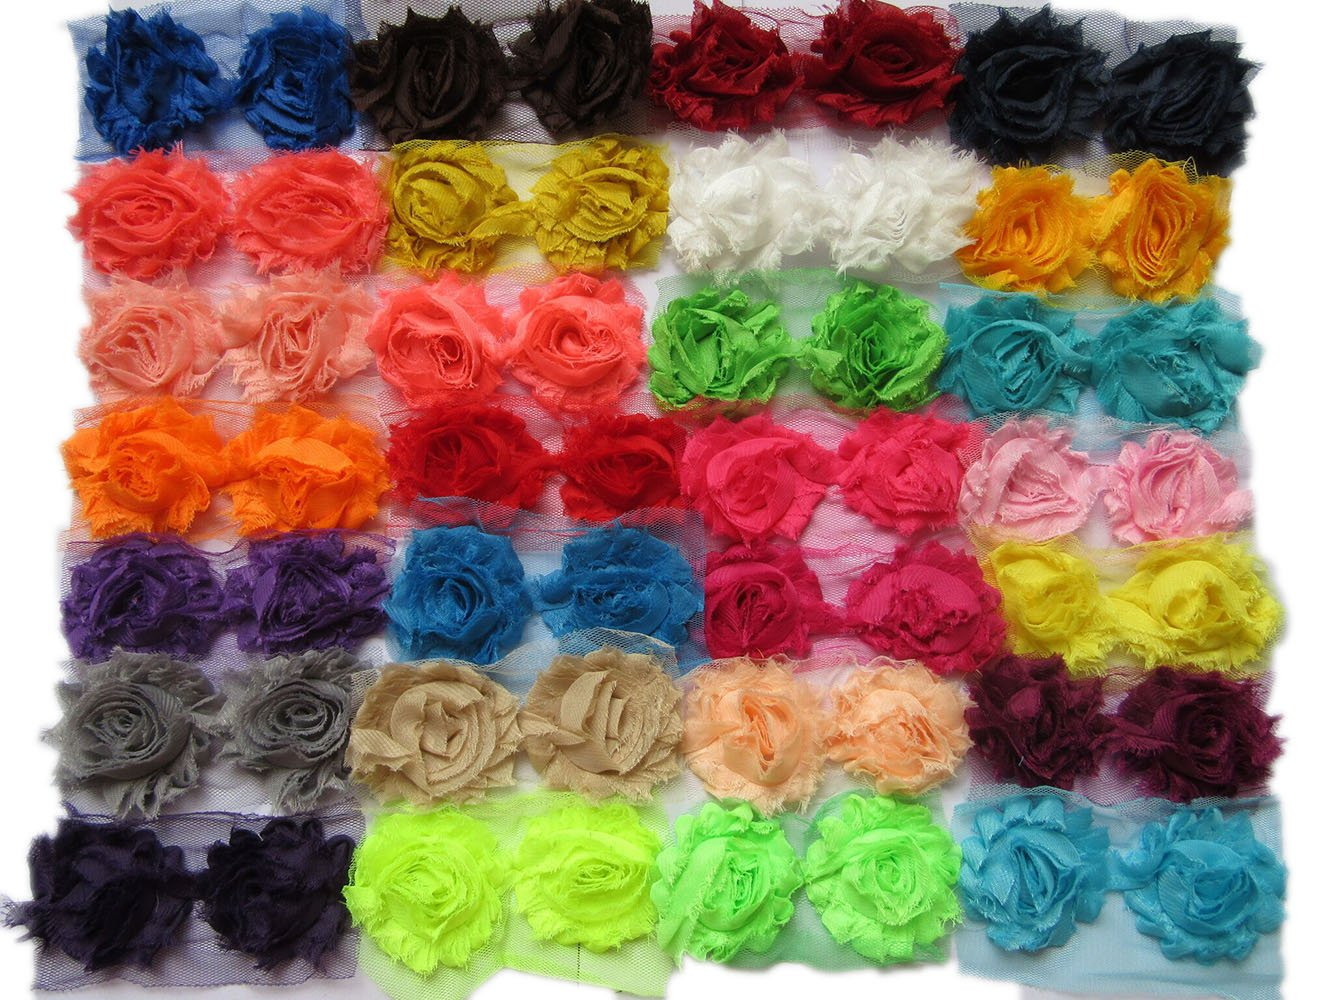 (28 Colors) - YYCRAFT (56 Pieces) Solids Shabby Flowers Trim Fabric Rose - Chiffon Fabric Roses - 6.4cm 28 Colours  28 Colors B07C9ZVSZM